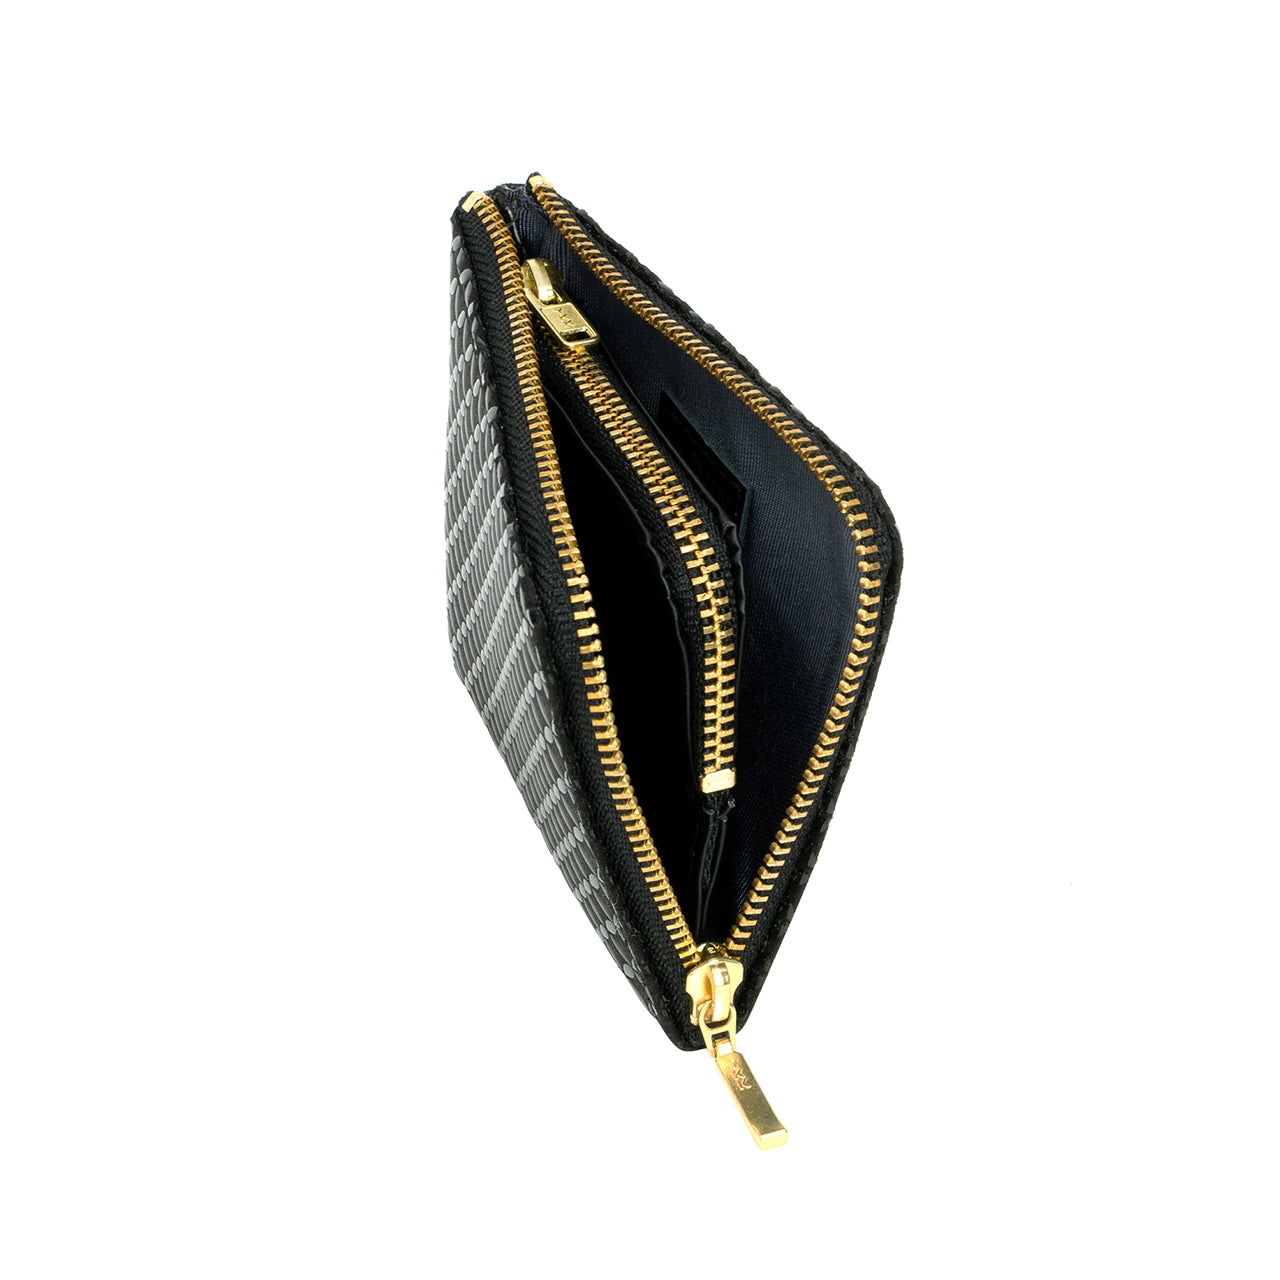 INDEN ZIPPED COIN PURSE Black x Black Seven Treasures